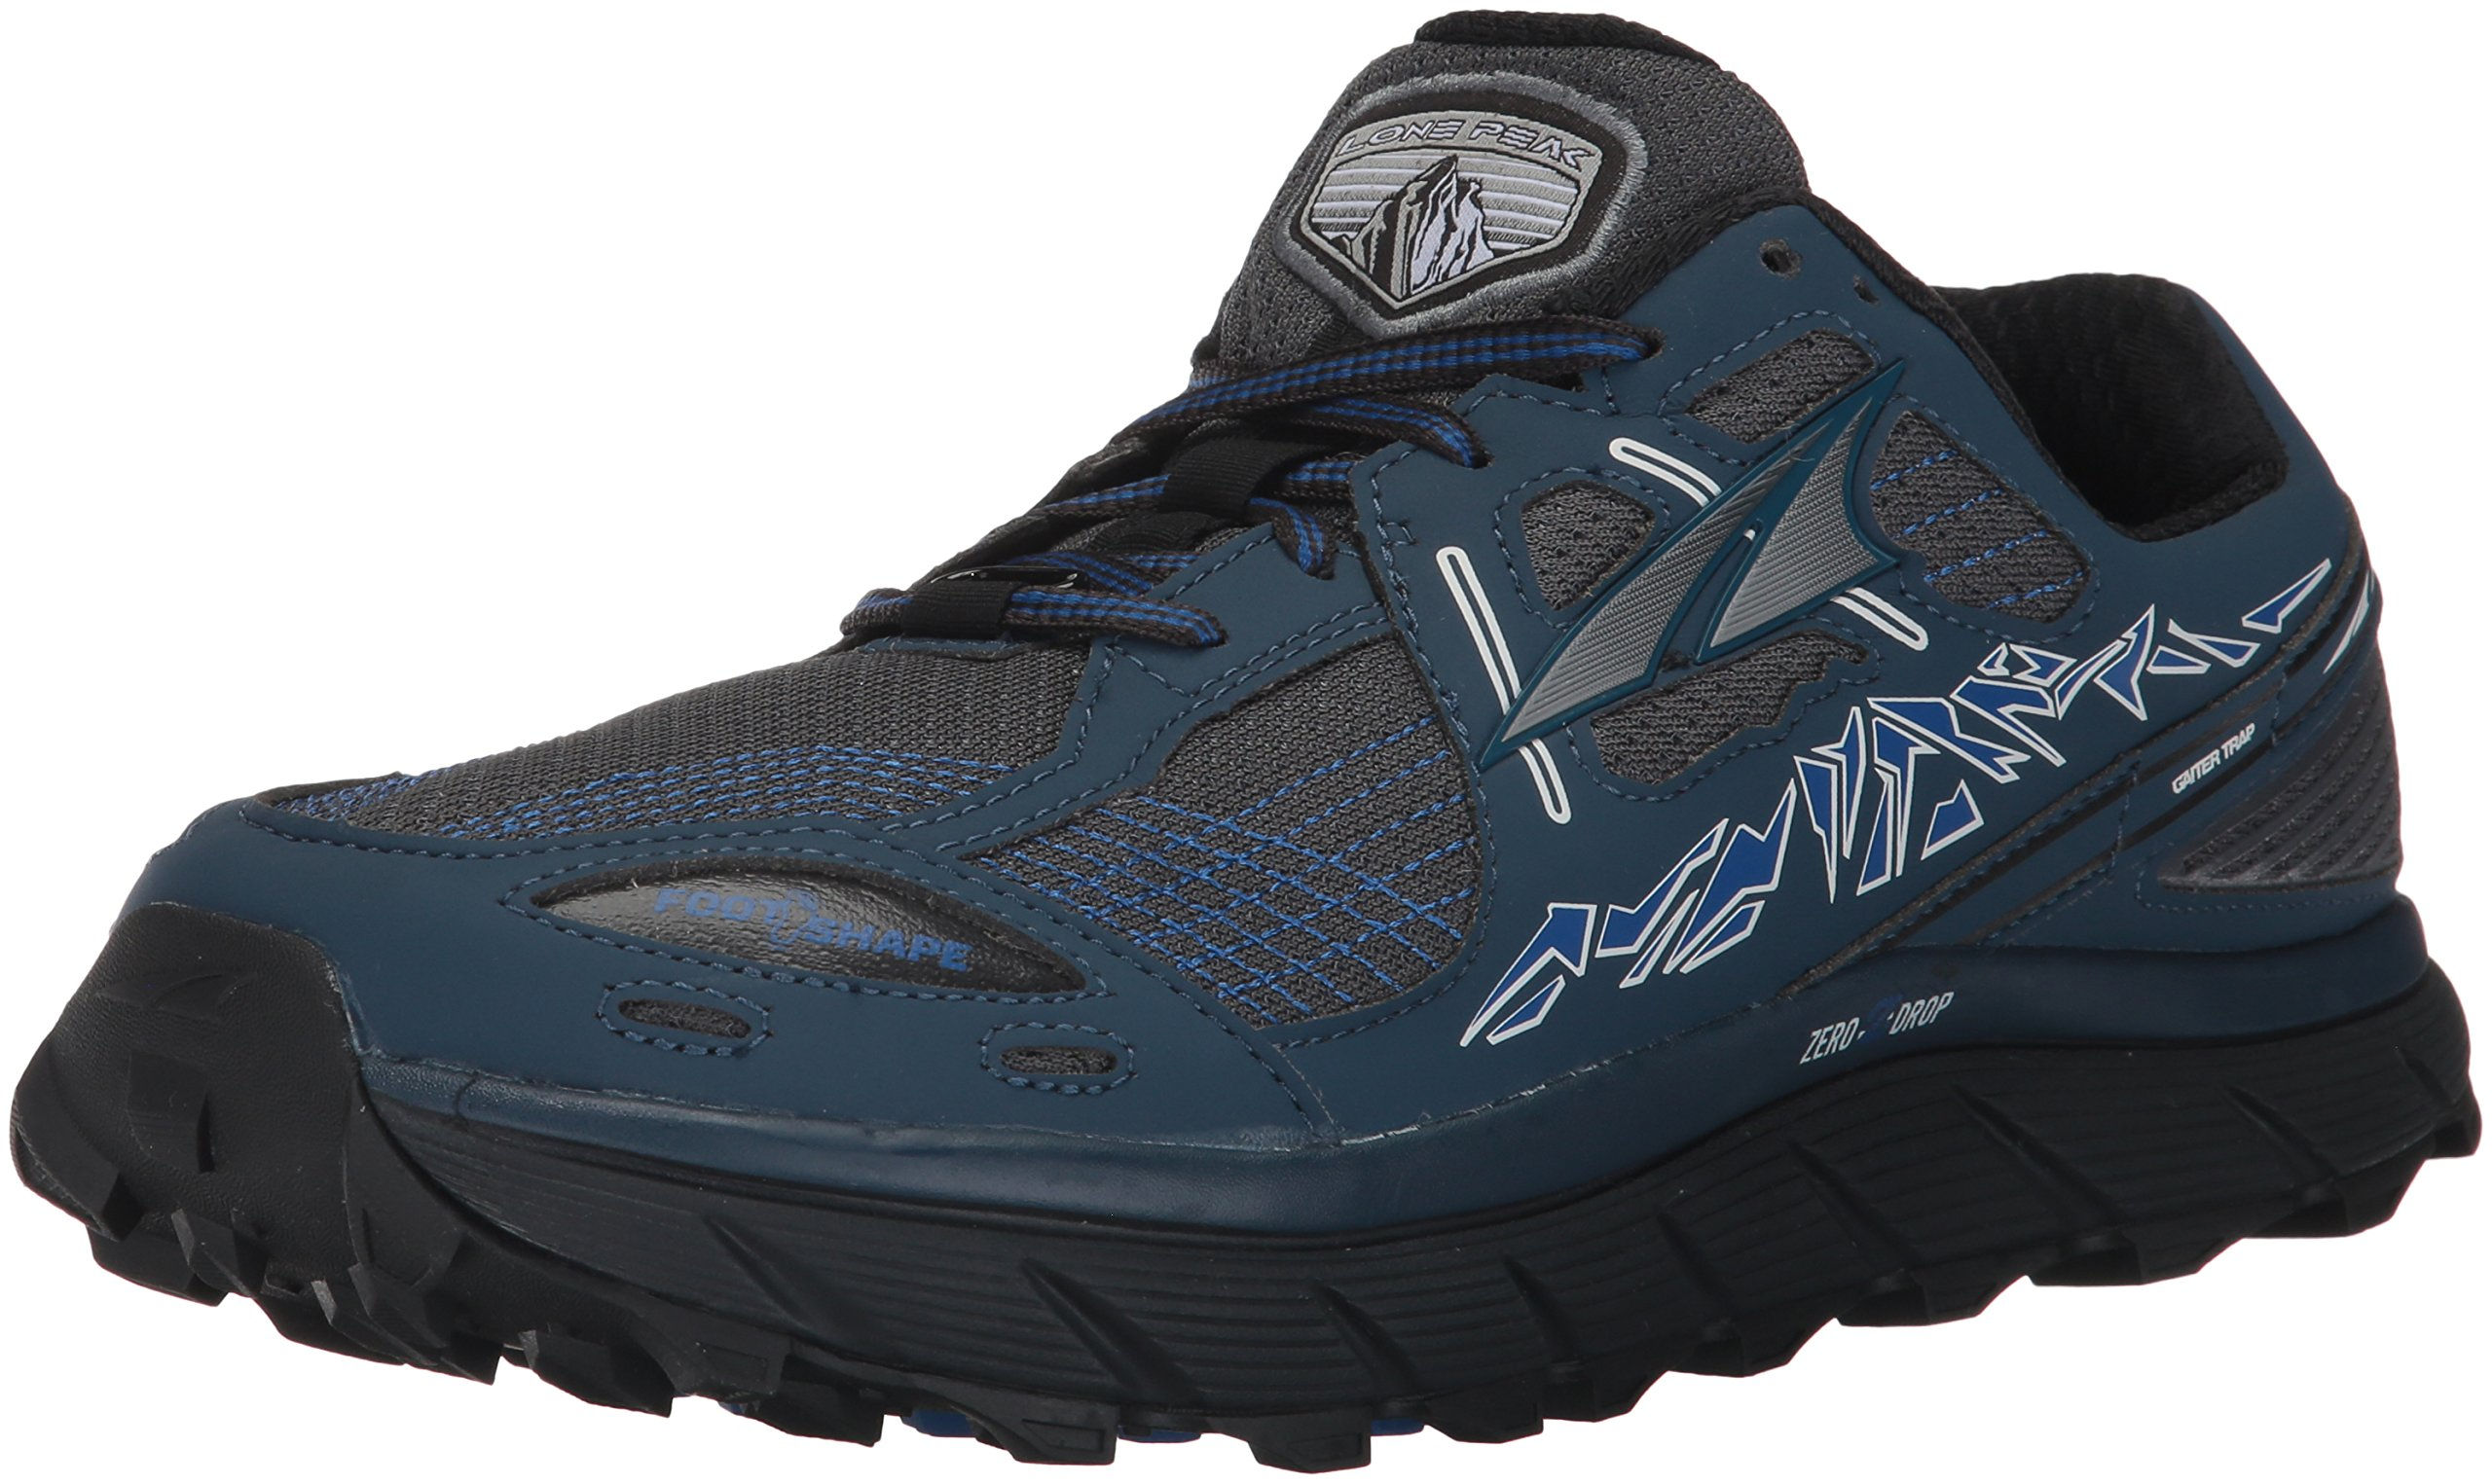 Altra Men's Lone Peak 3.5 Running Shoe, Blue, 13 D US